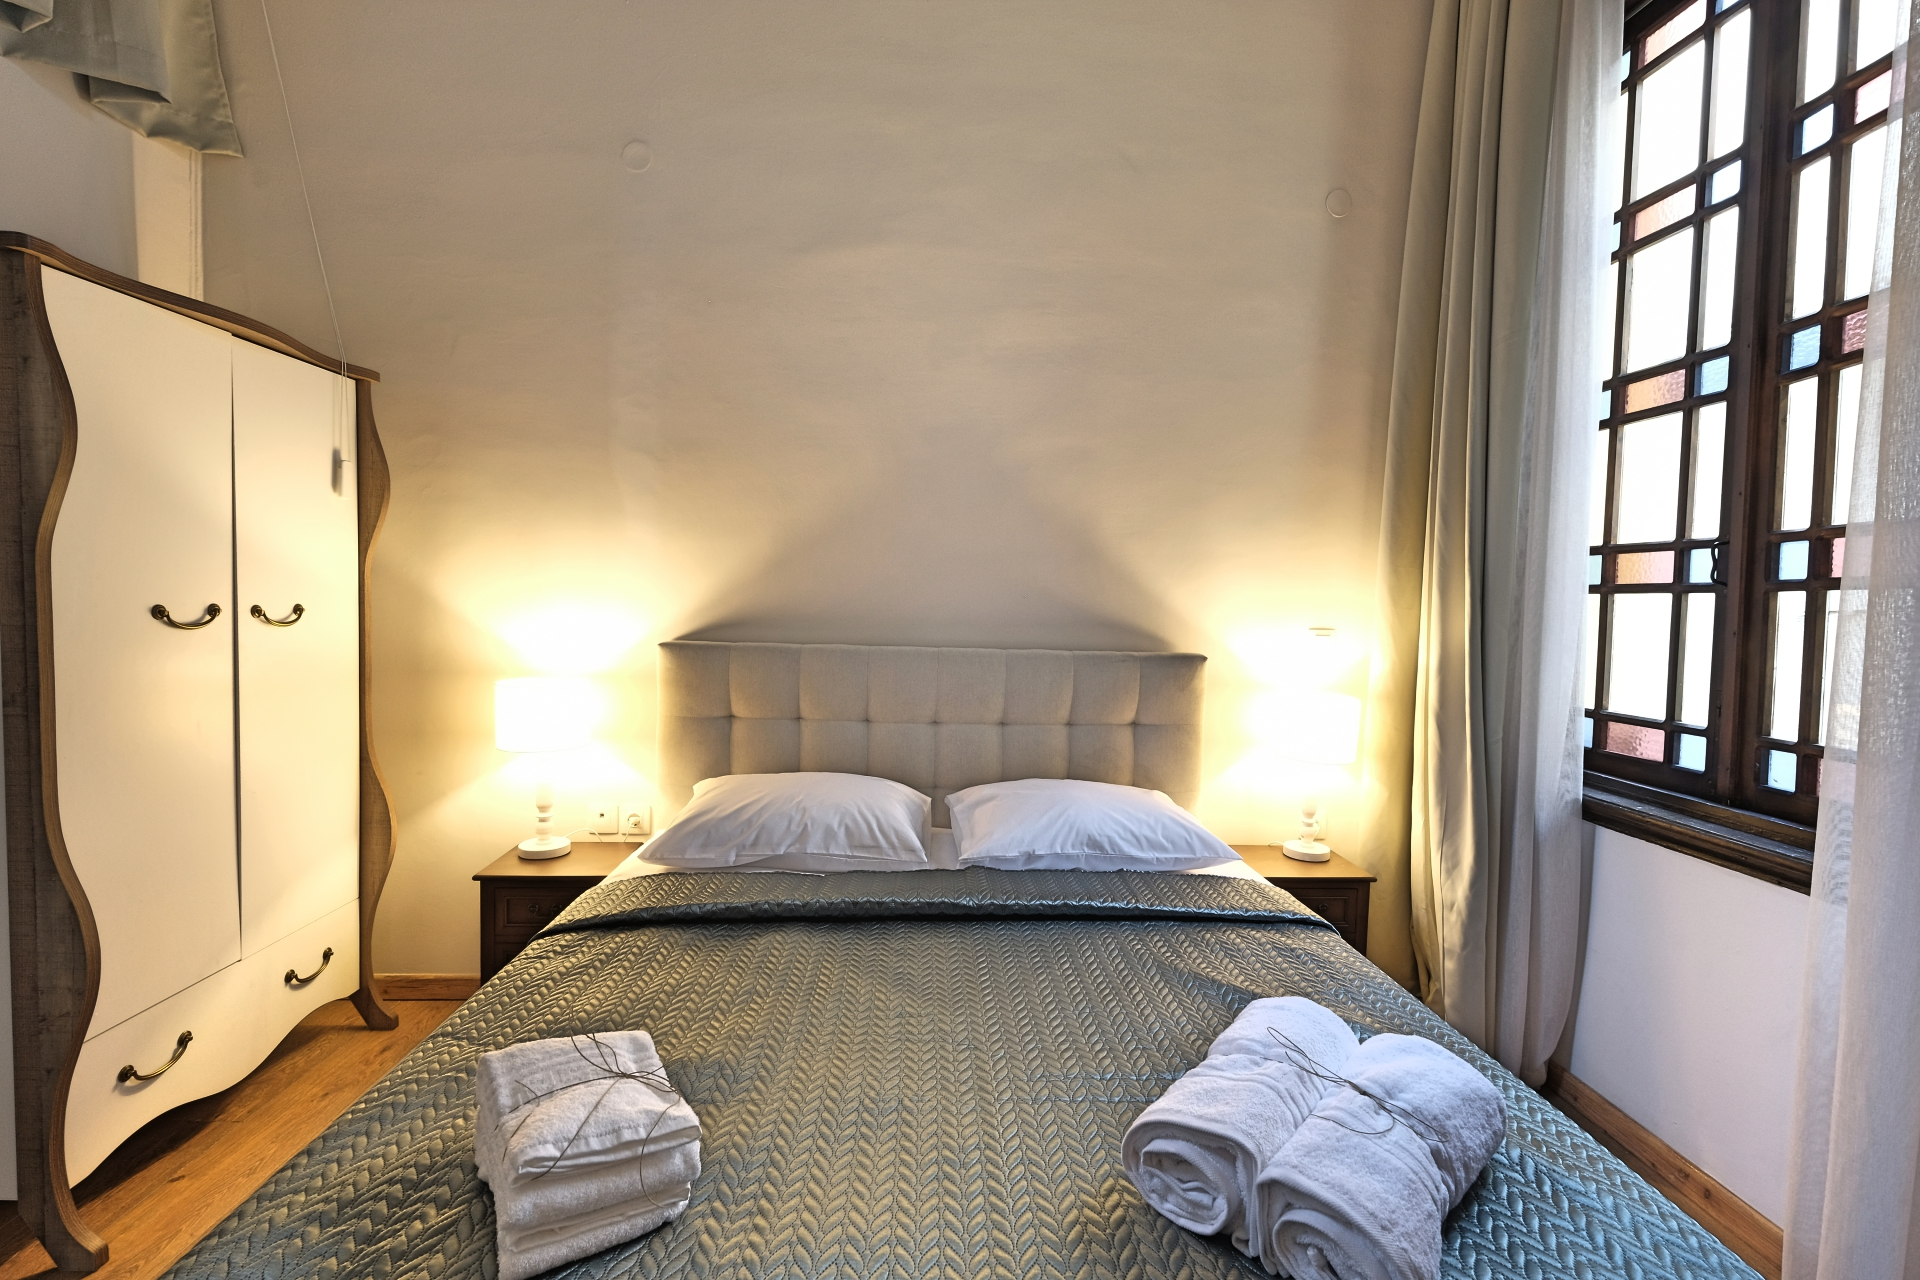 Standard Double Room with Double Bed & Painted Ceiling 2 - Agora Residence - Hotel in Chios